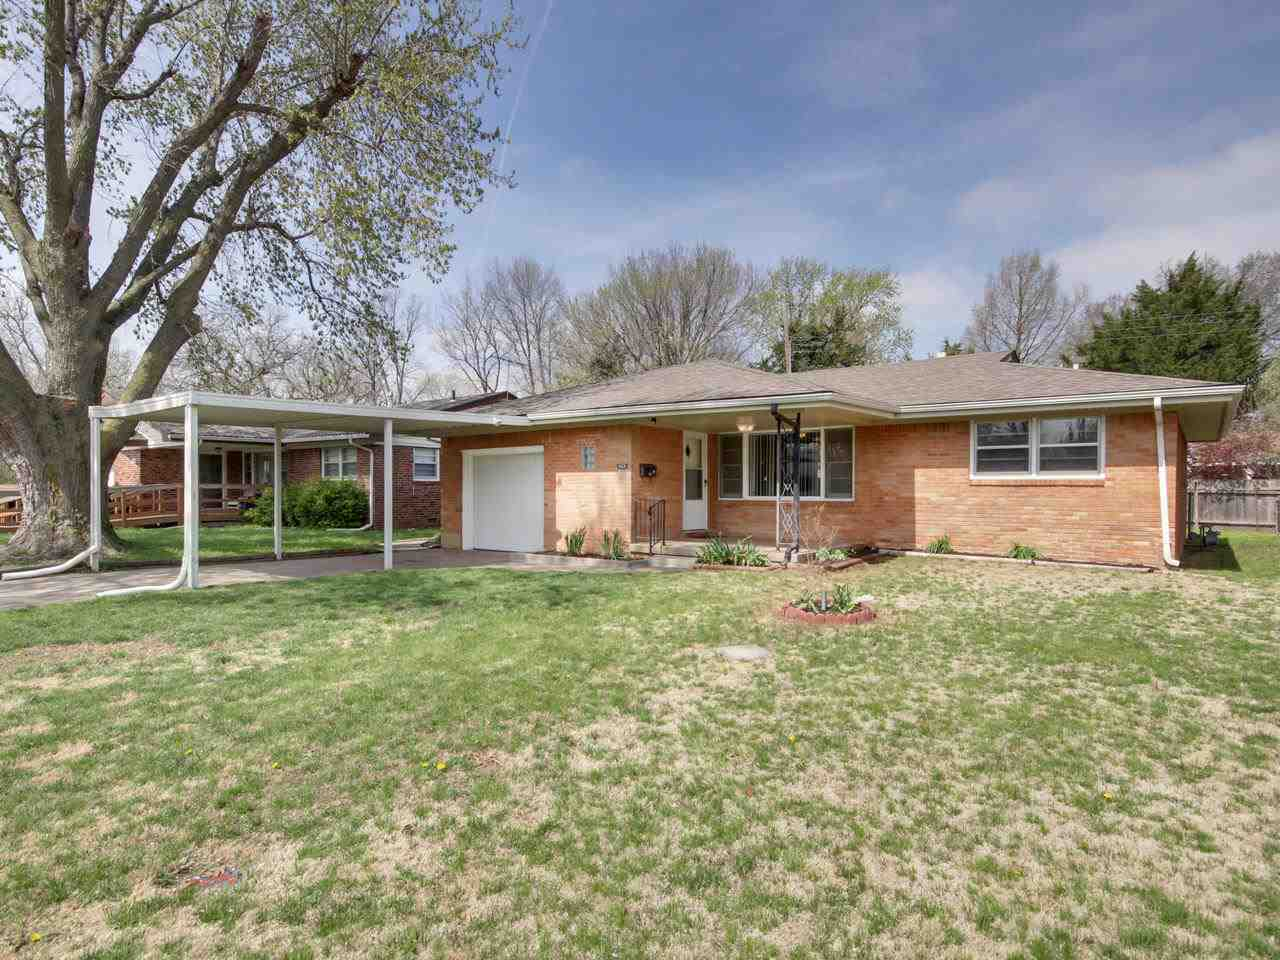 Welcome home to this beautifully remodeled 3 bedroom, 1 bath brick ranch nestled in a quiet Haysvill